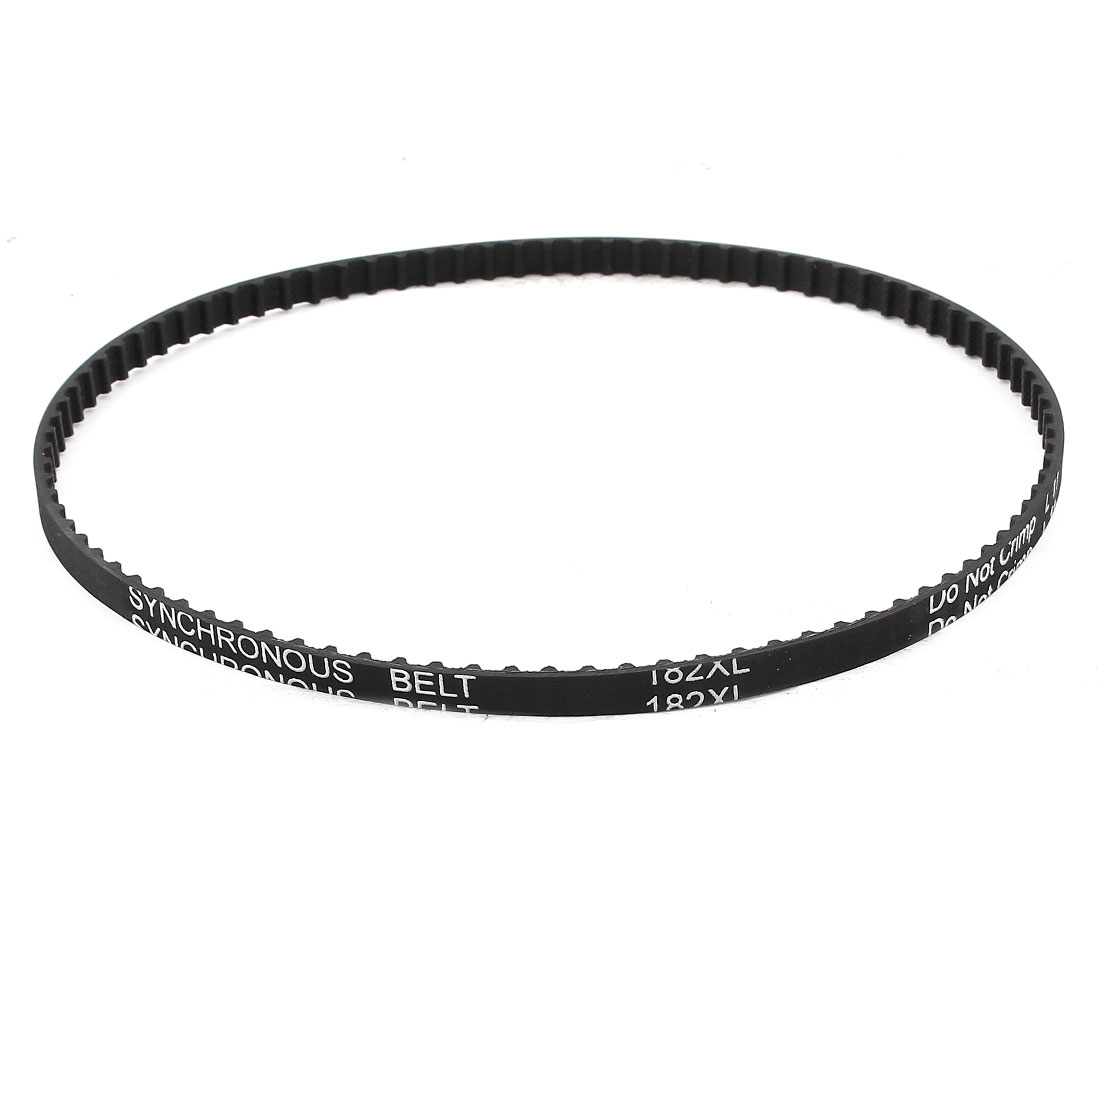 182XL 025 91 Teeth 5.08mm Pitch 6.4mm Width Industrial Timing Belt 462.28mm